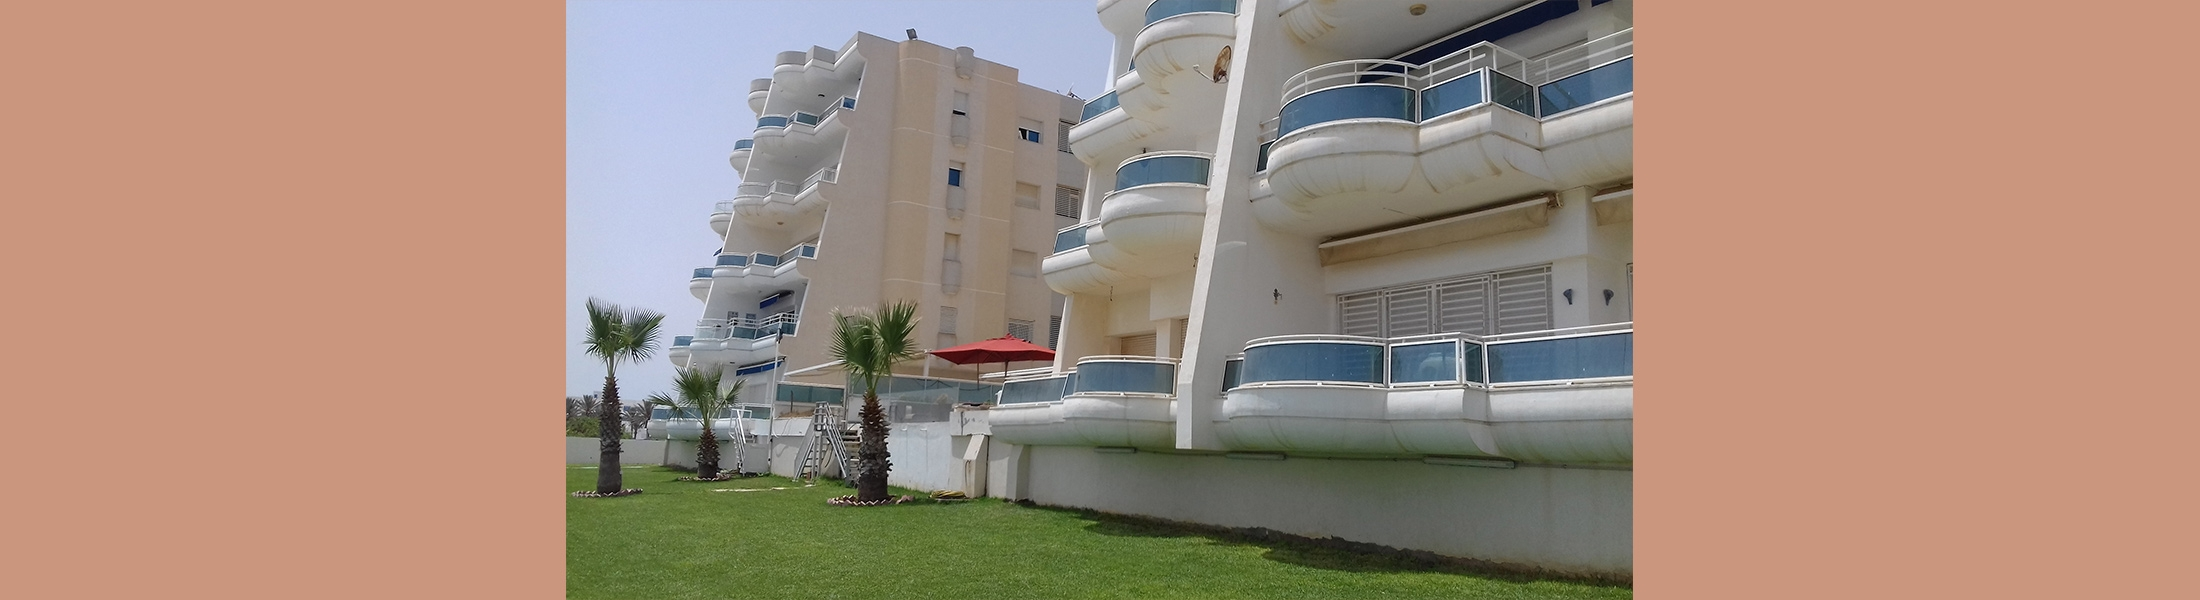 Appartement « Arous El Bahr 19 »